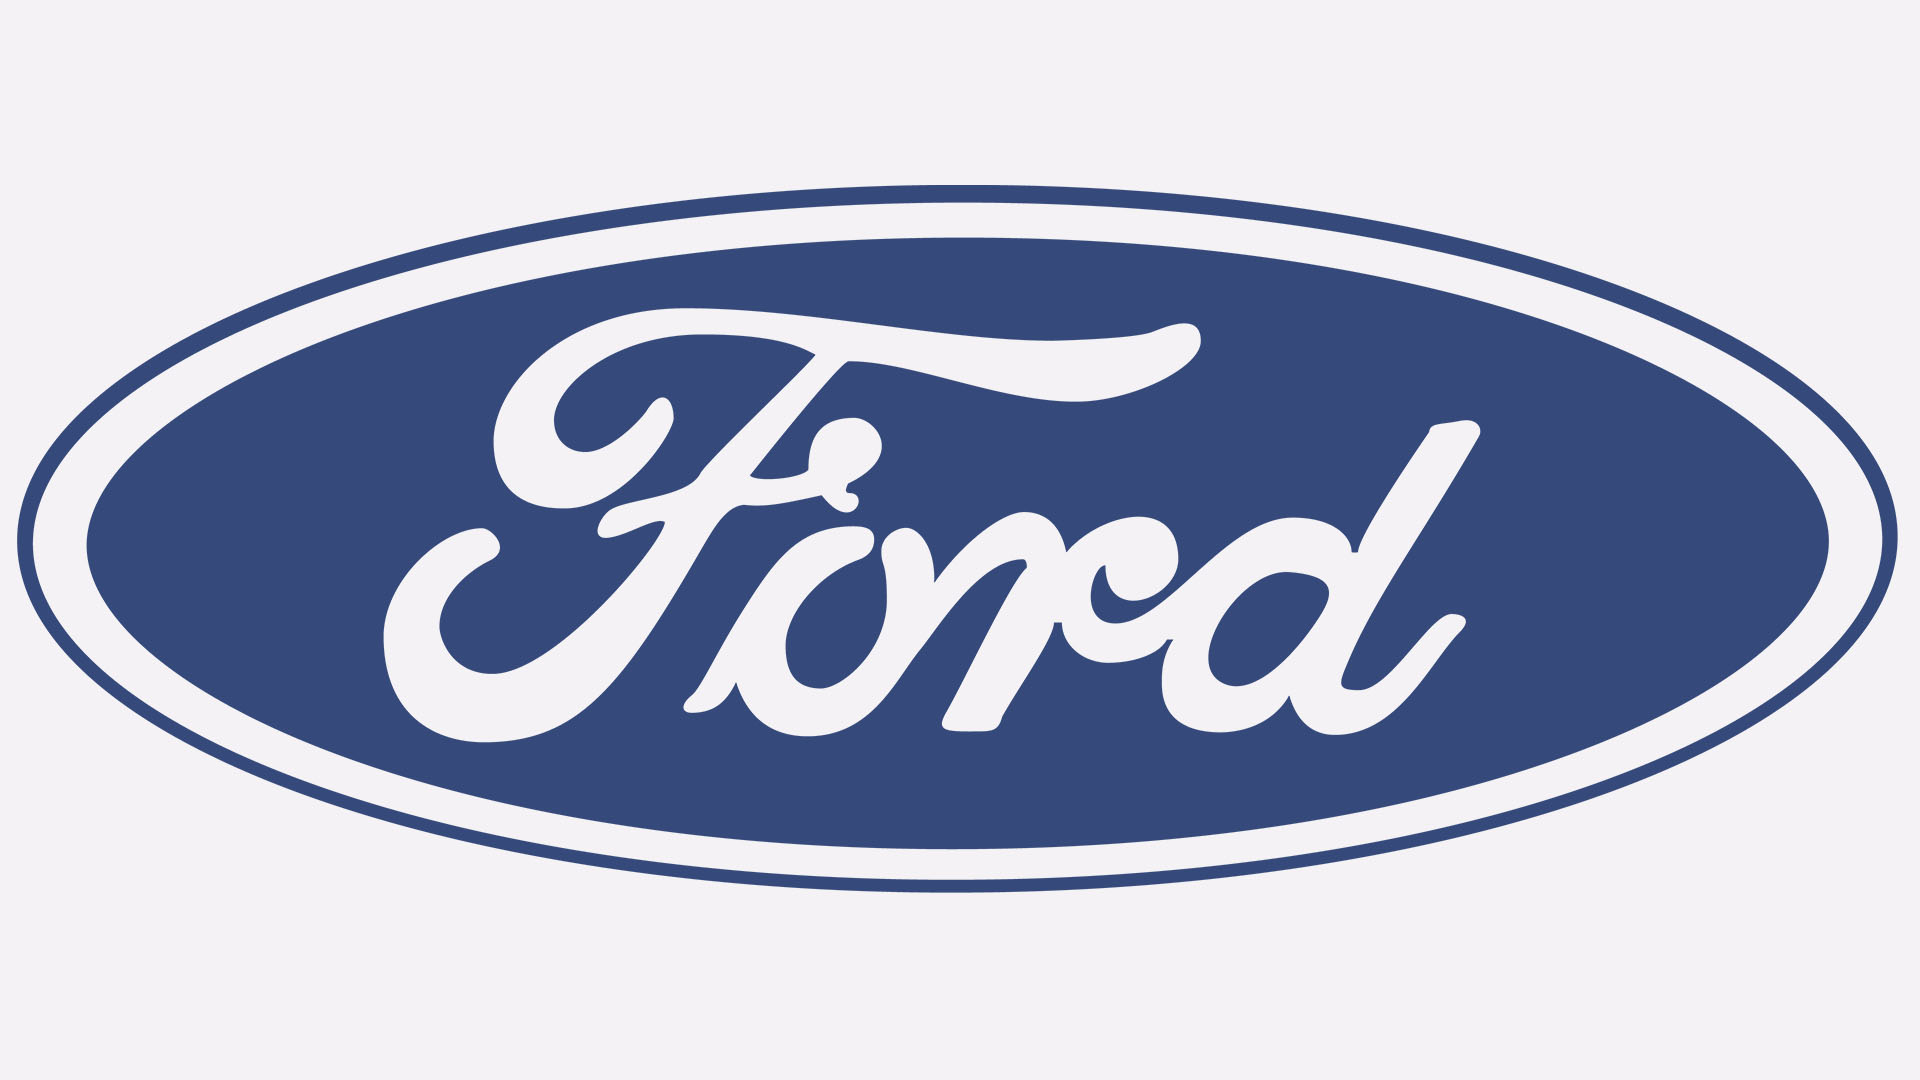 ford logo meaning and